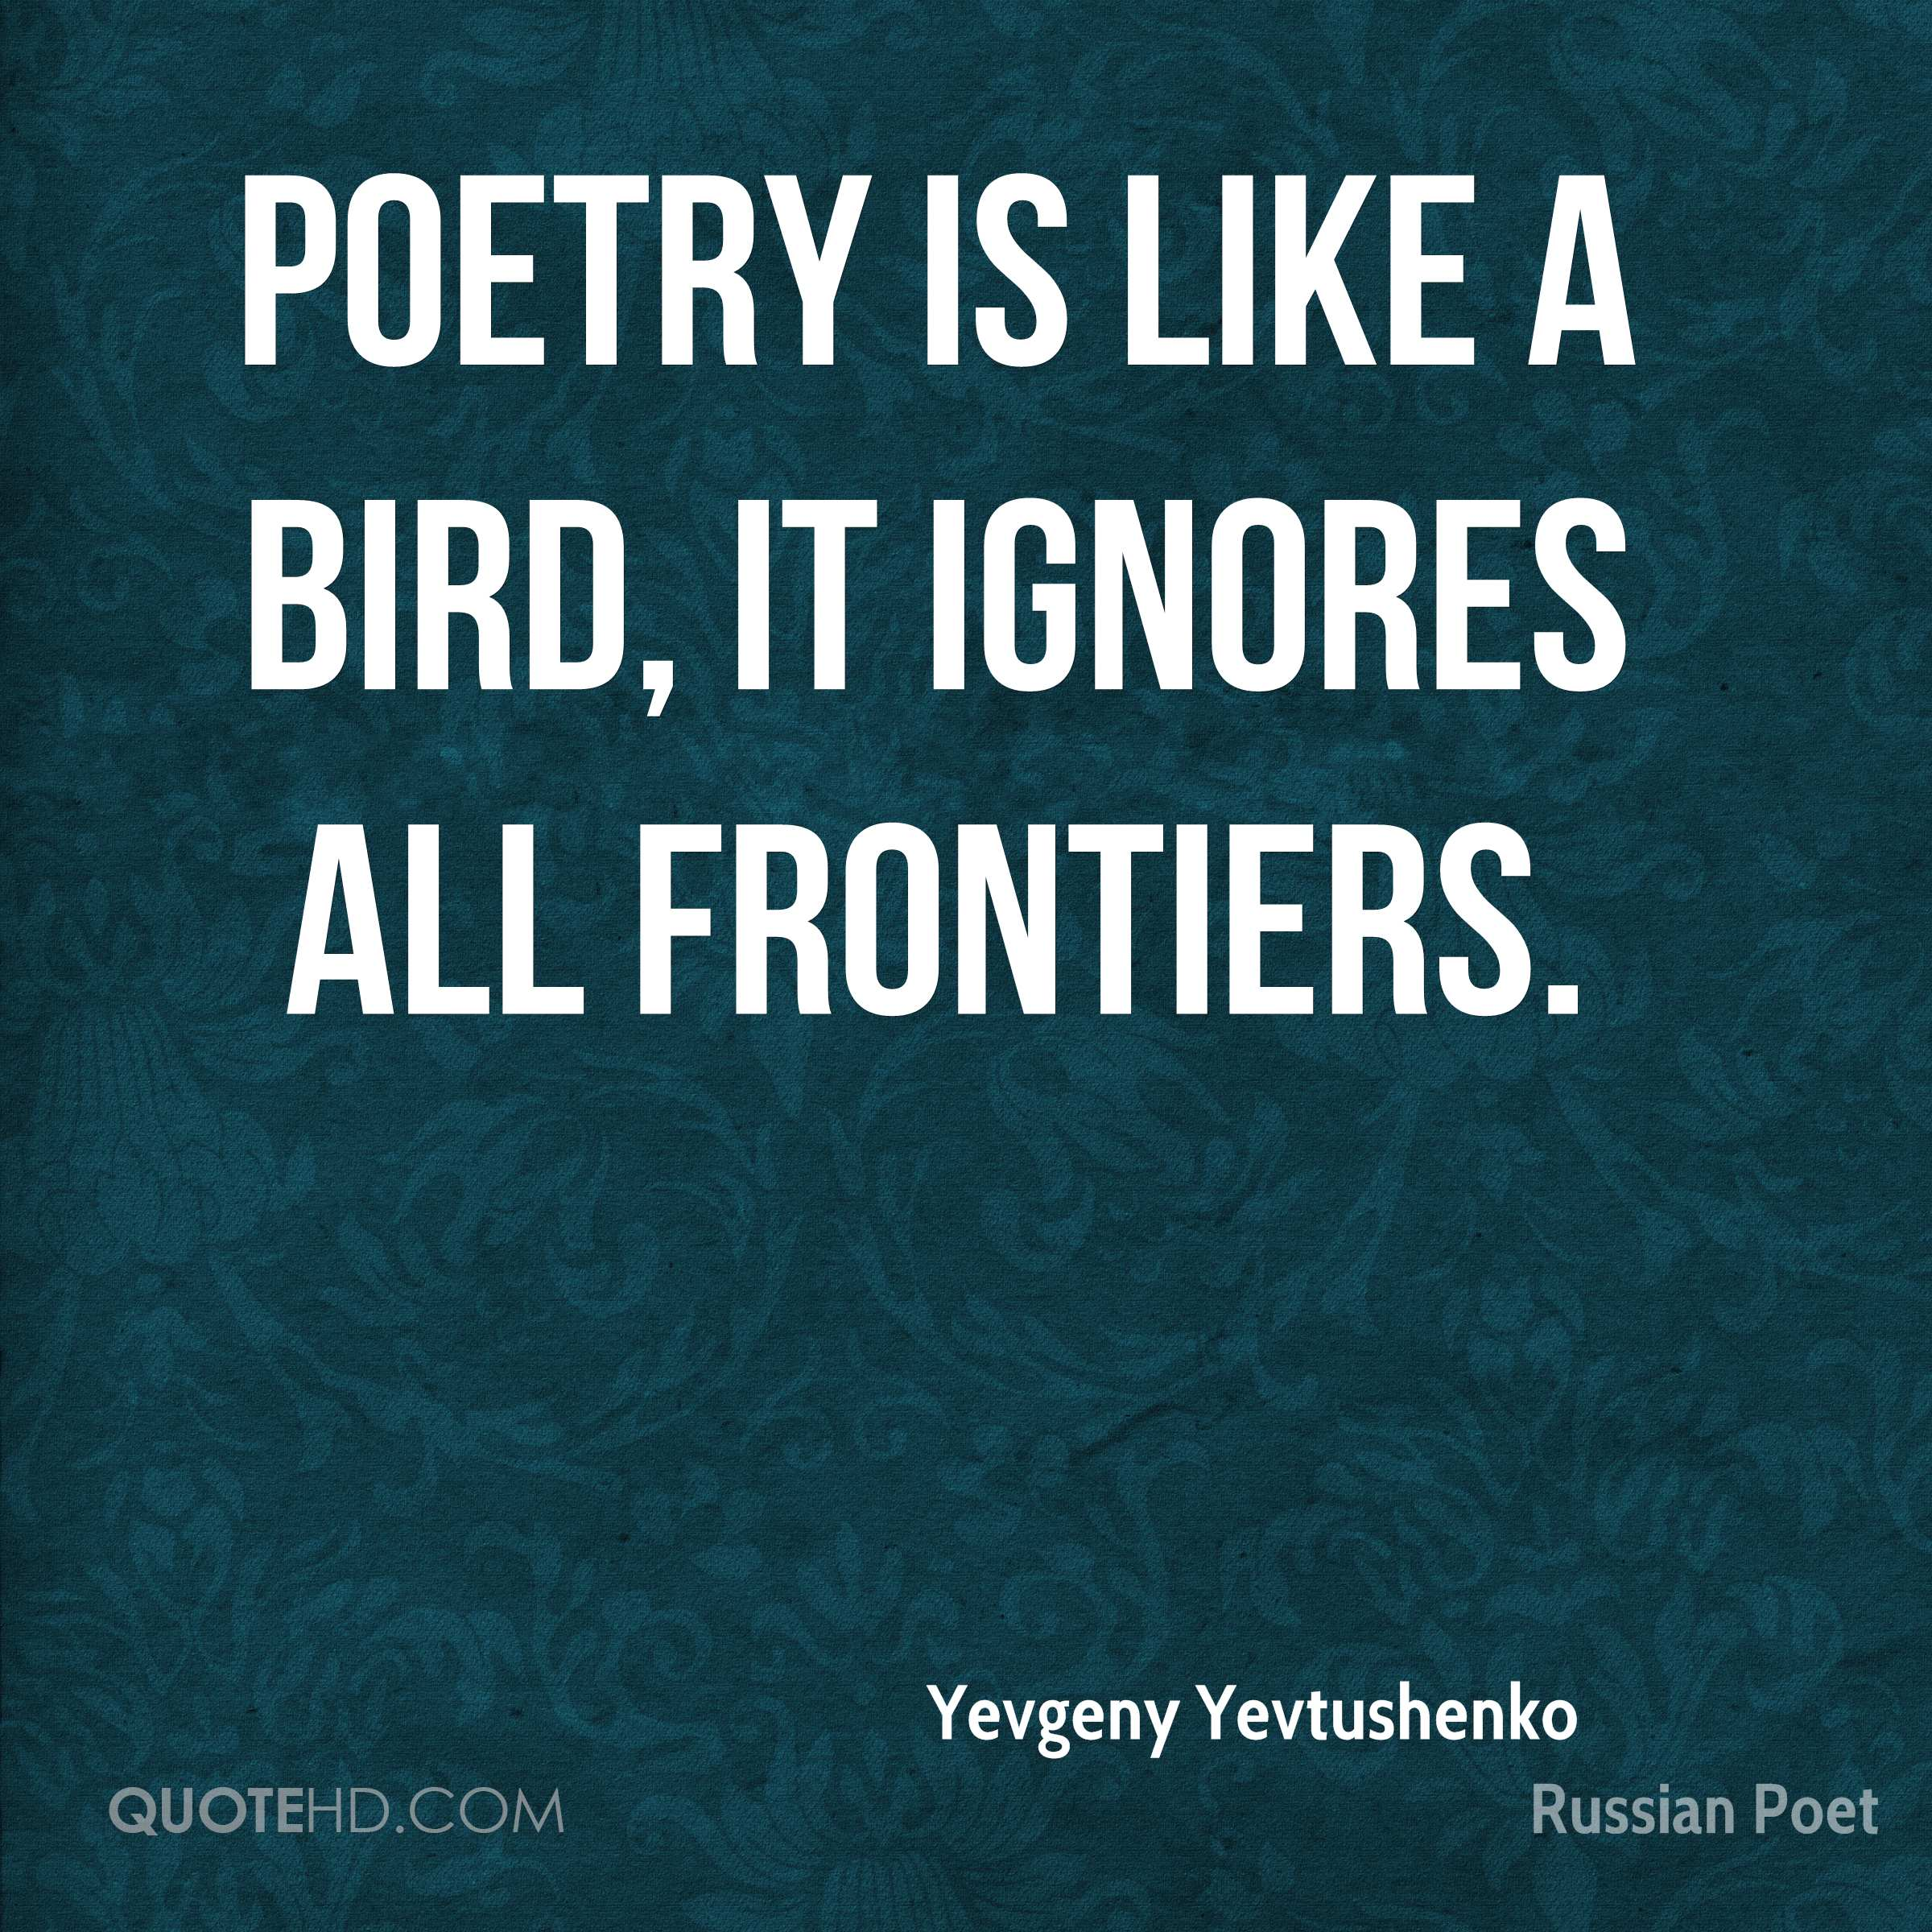 Poetry is like a bird, it ignores all frontiers.